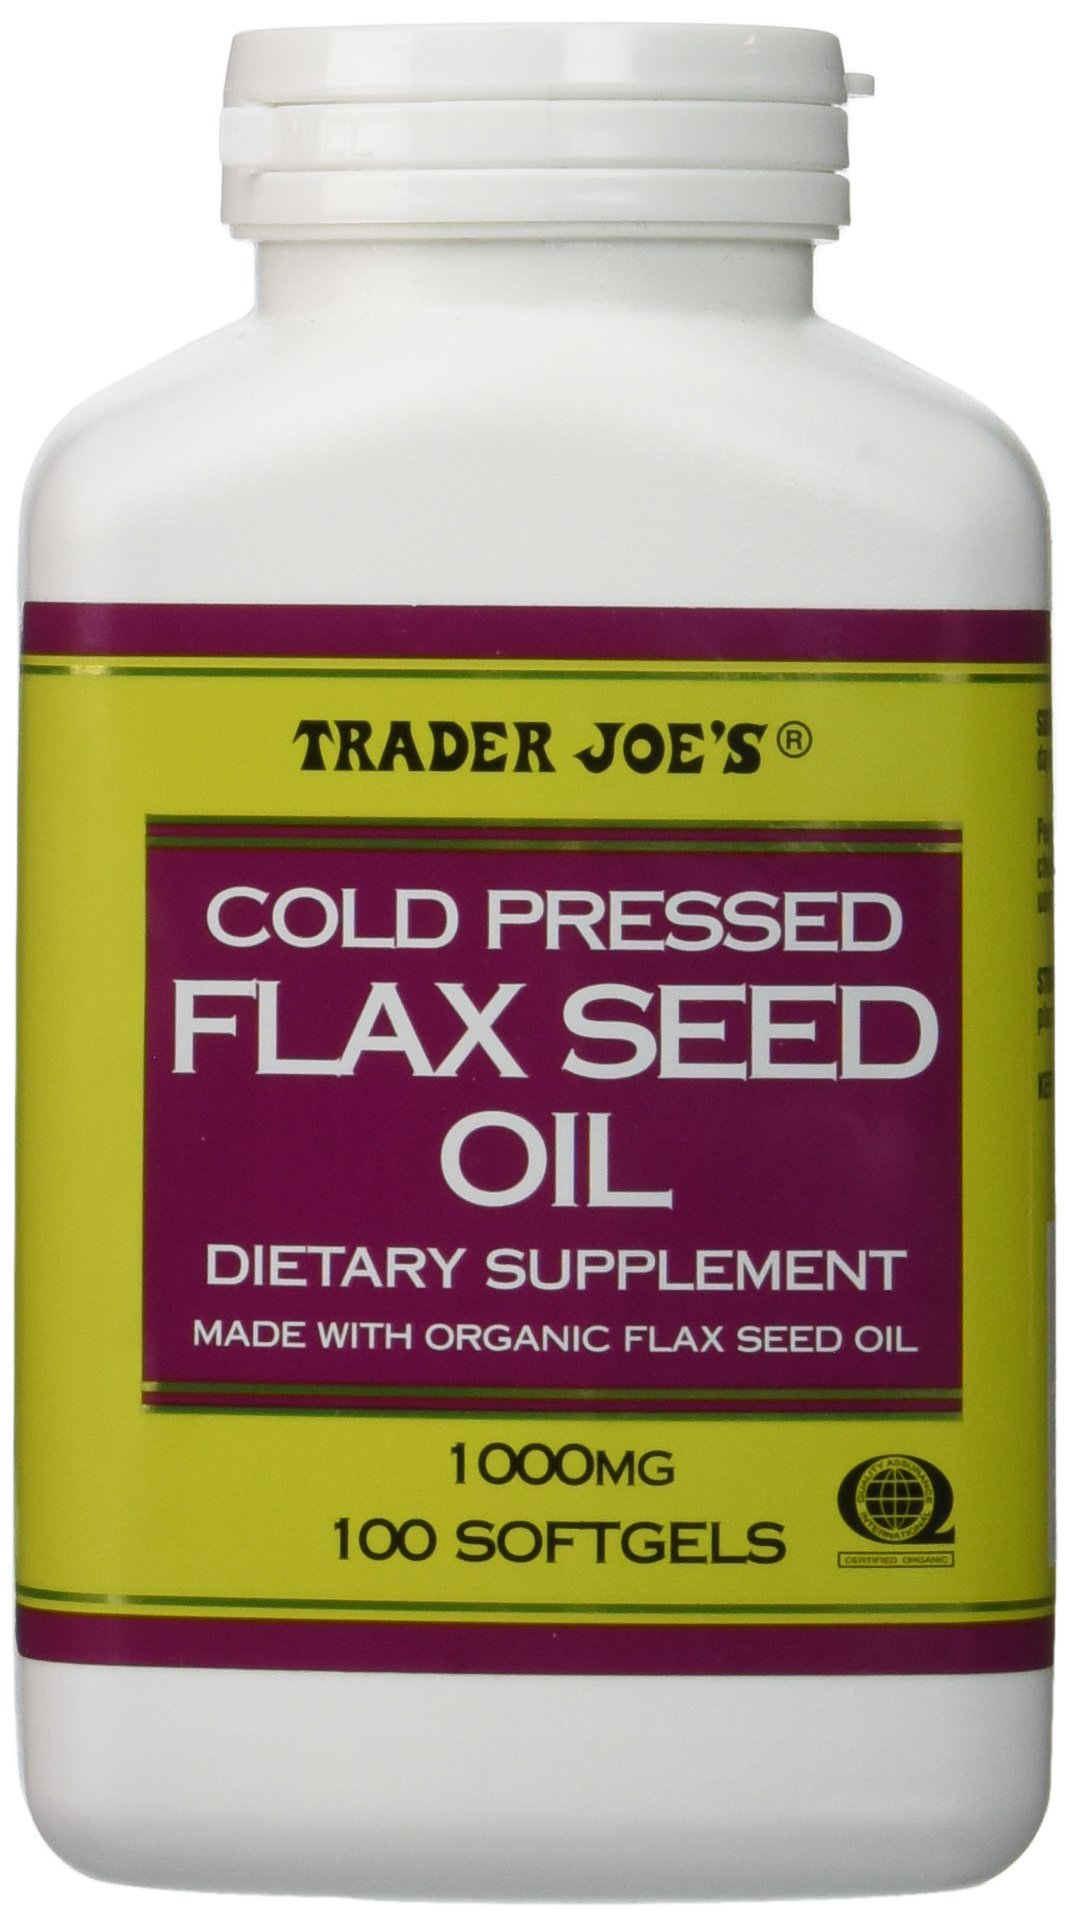 Trader Joe's Cold Pressed Flax Seed Oil Dietary Supplement Made with Organic Flaxseed Oil 1000 Mg / 100 Softgels No Gluten Ingredients Used Many Health Benefits !!!!! by Trader Joe's